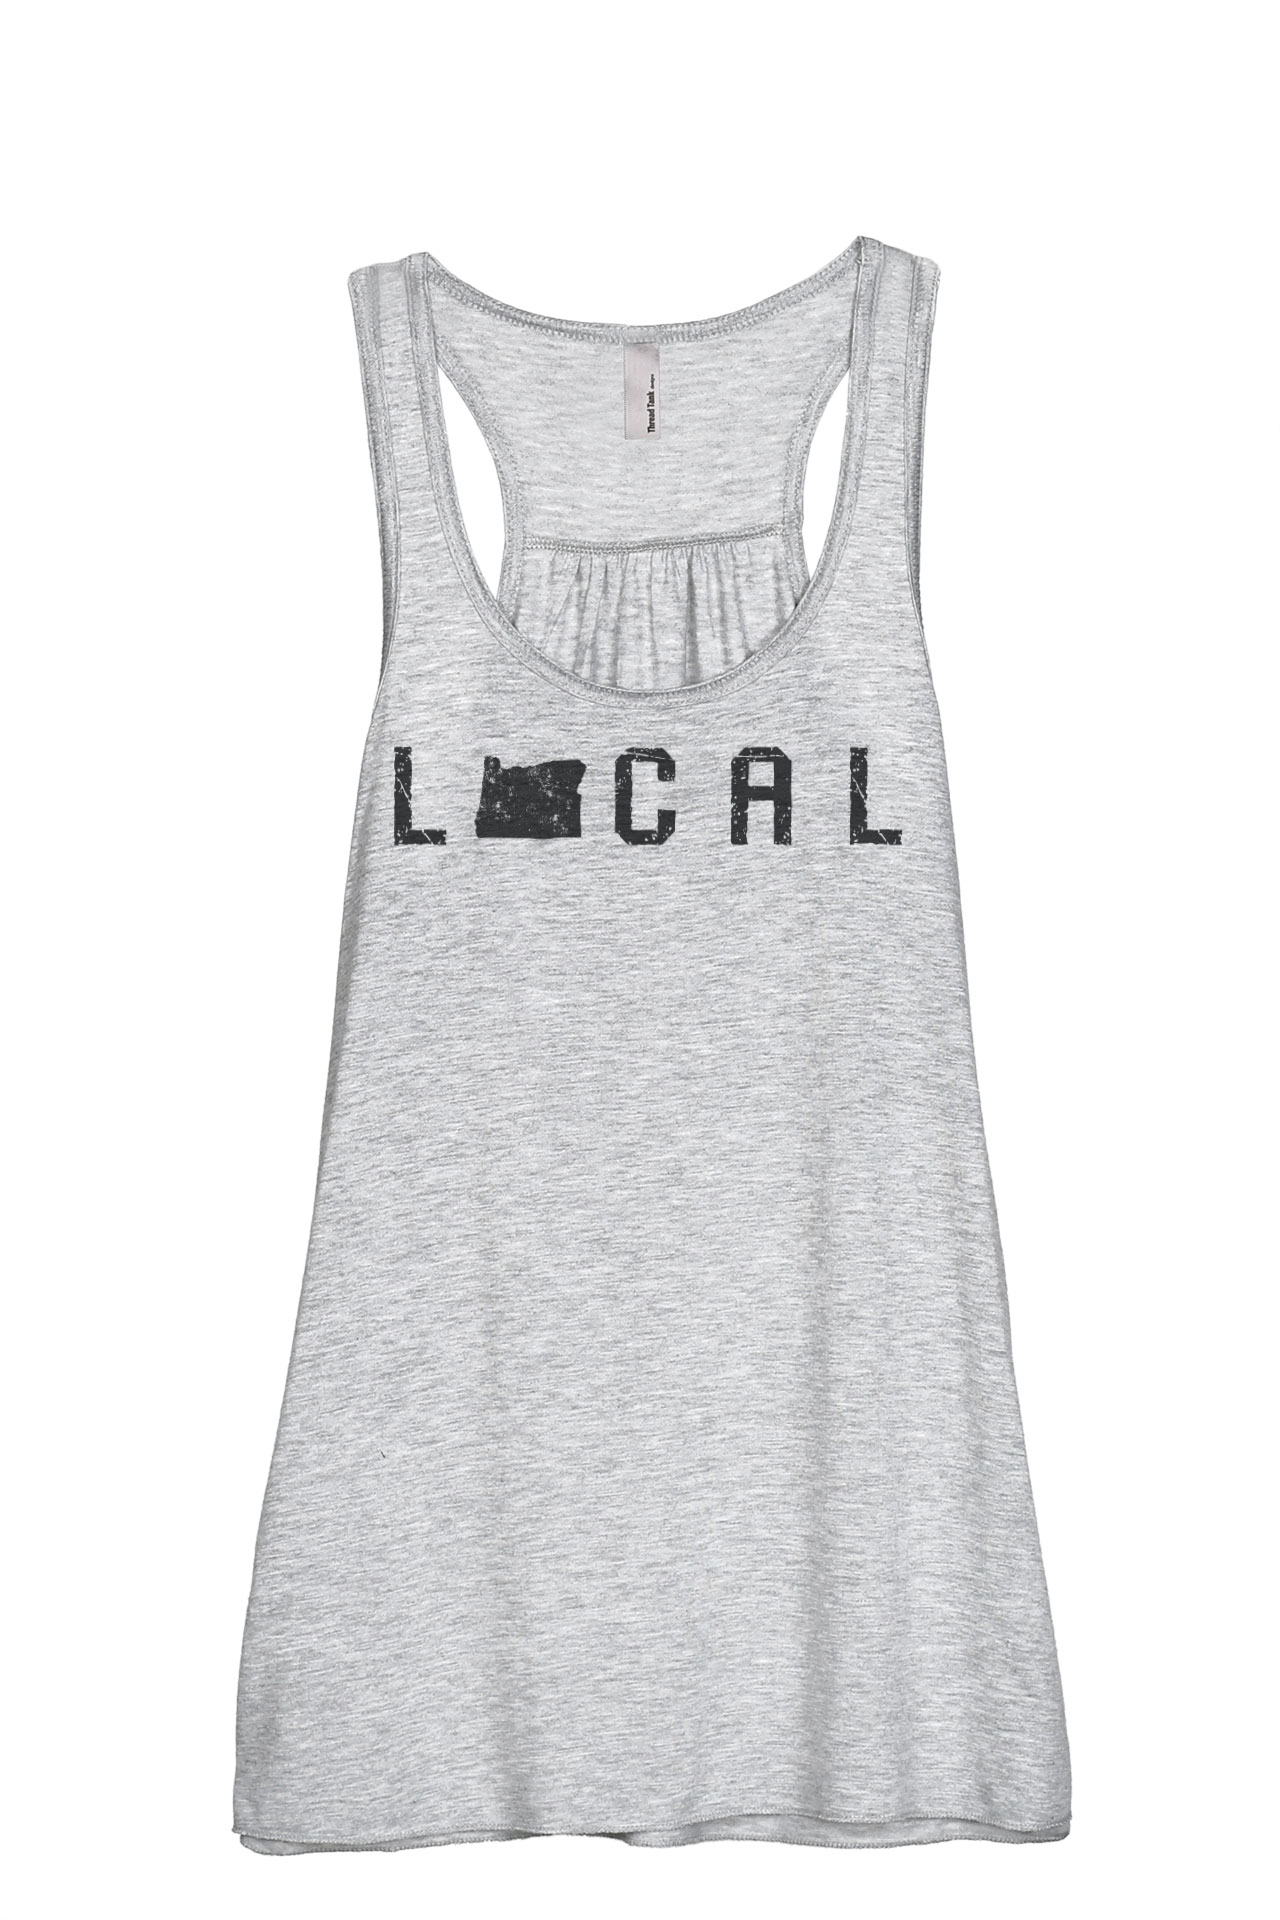 Thread Tank Local Oregon State Women's Sleeveless Flowy Racerback Tank Top Charcoal Small by